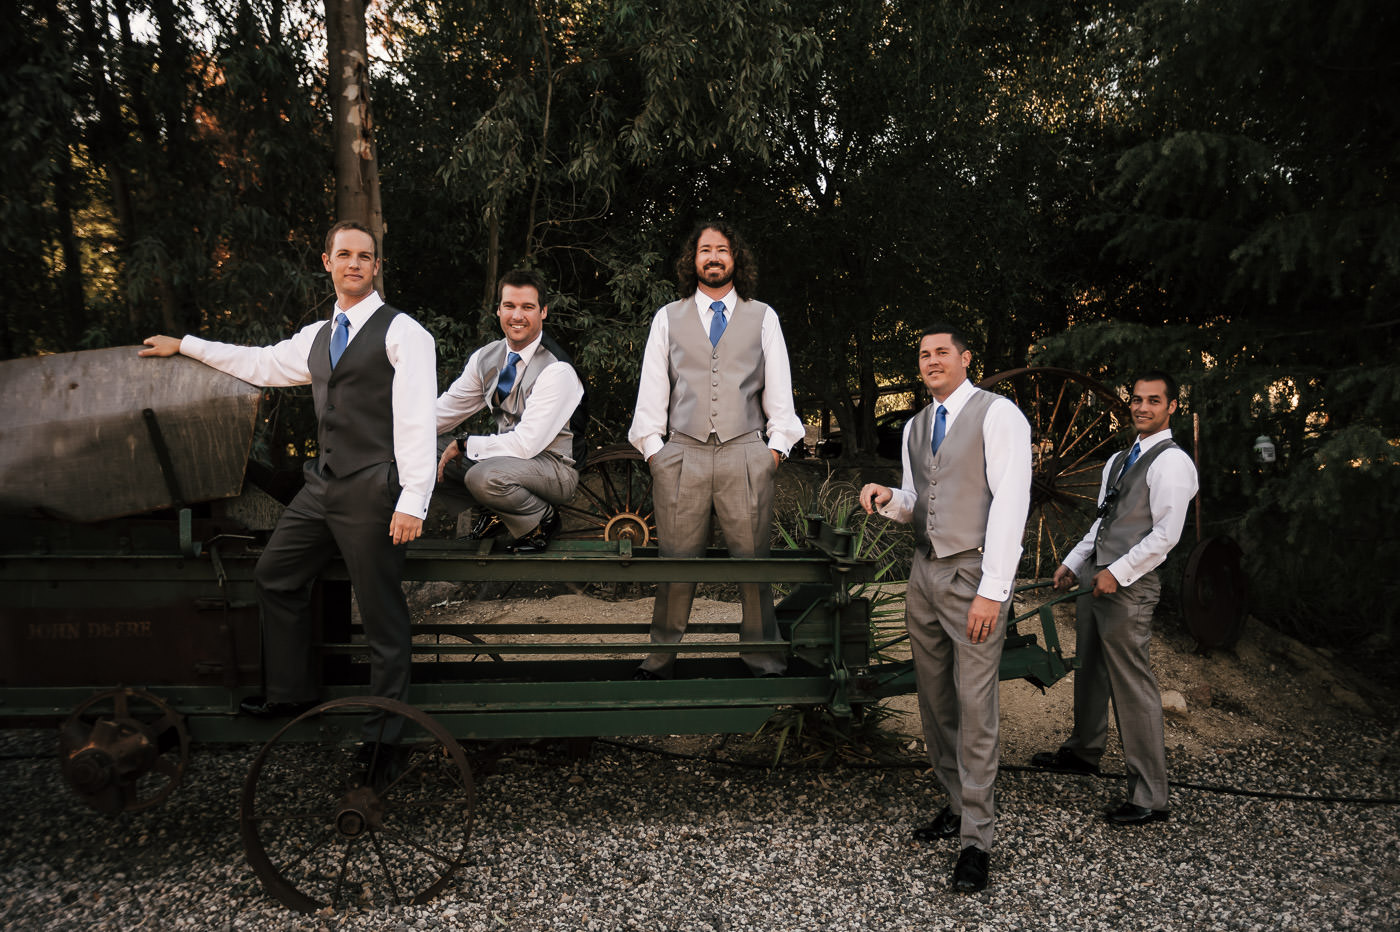 groom and his groomsmen poses on some old farm equipment